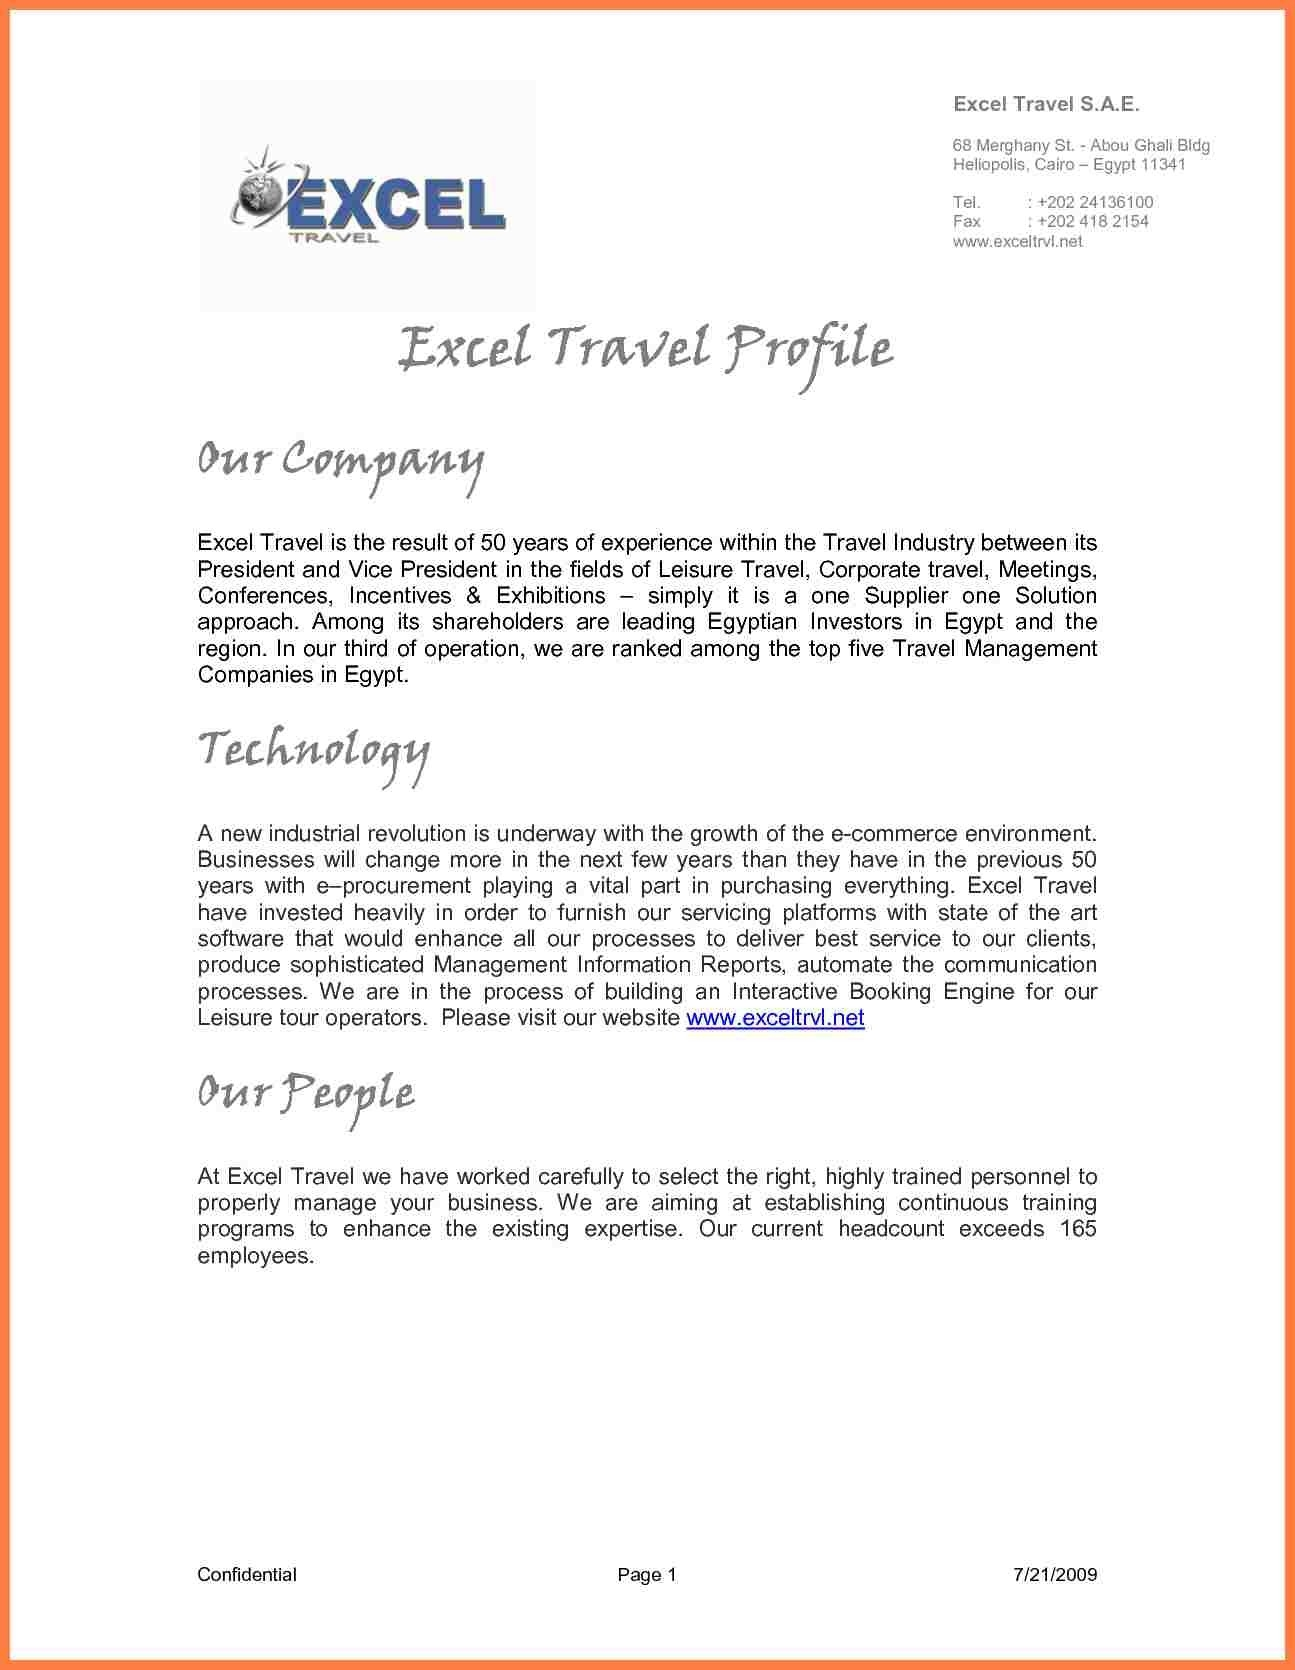 5+ Sample It Company Profile | Company Letterhead intended for Sample Profile Image 19896